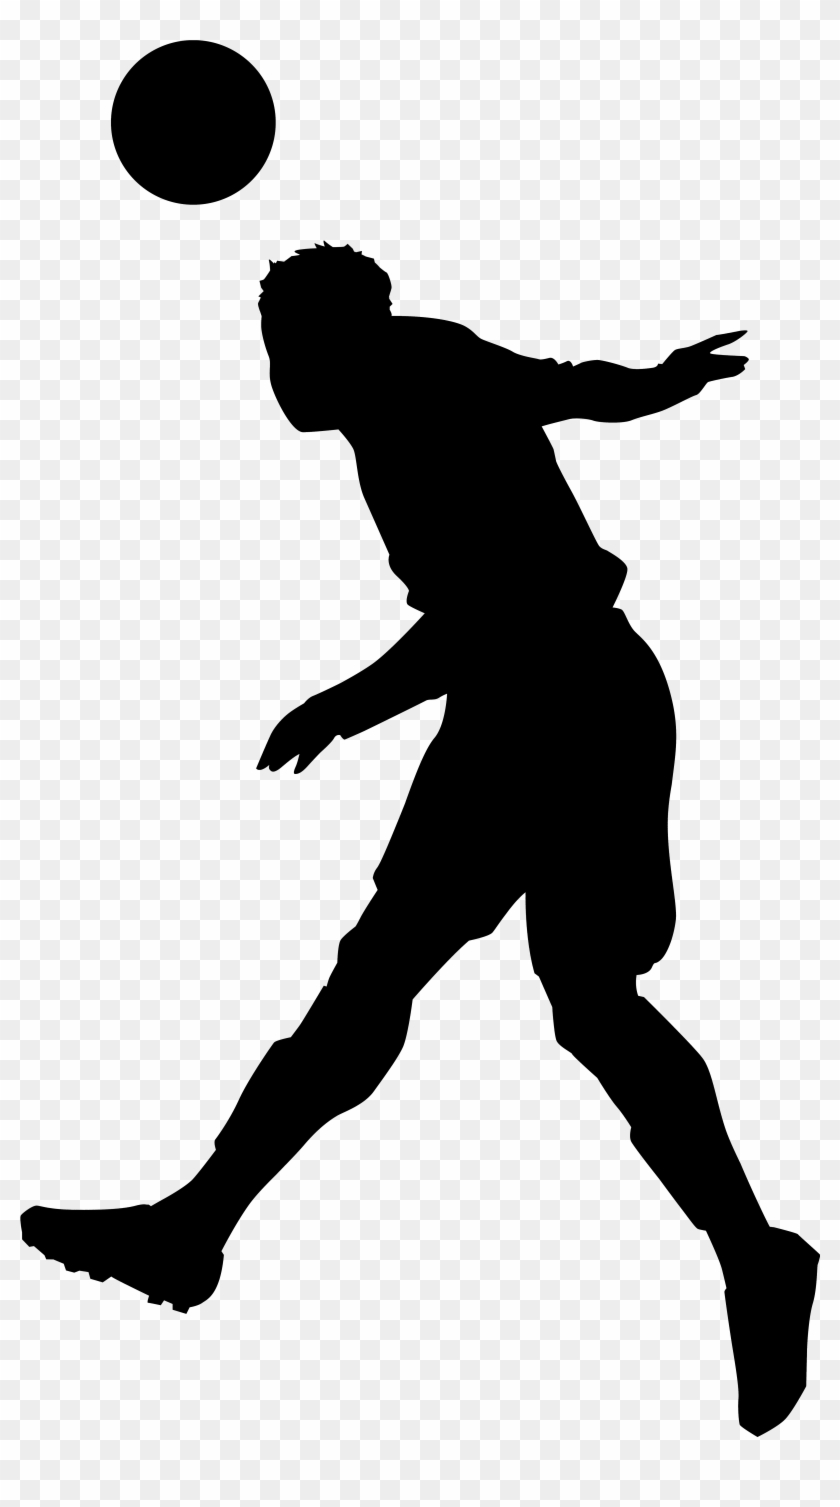 Footballer Silhouette Png Clip Art Imageu200b Gallery - Soccer Player Silhouette Png #6334